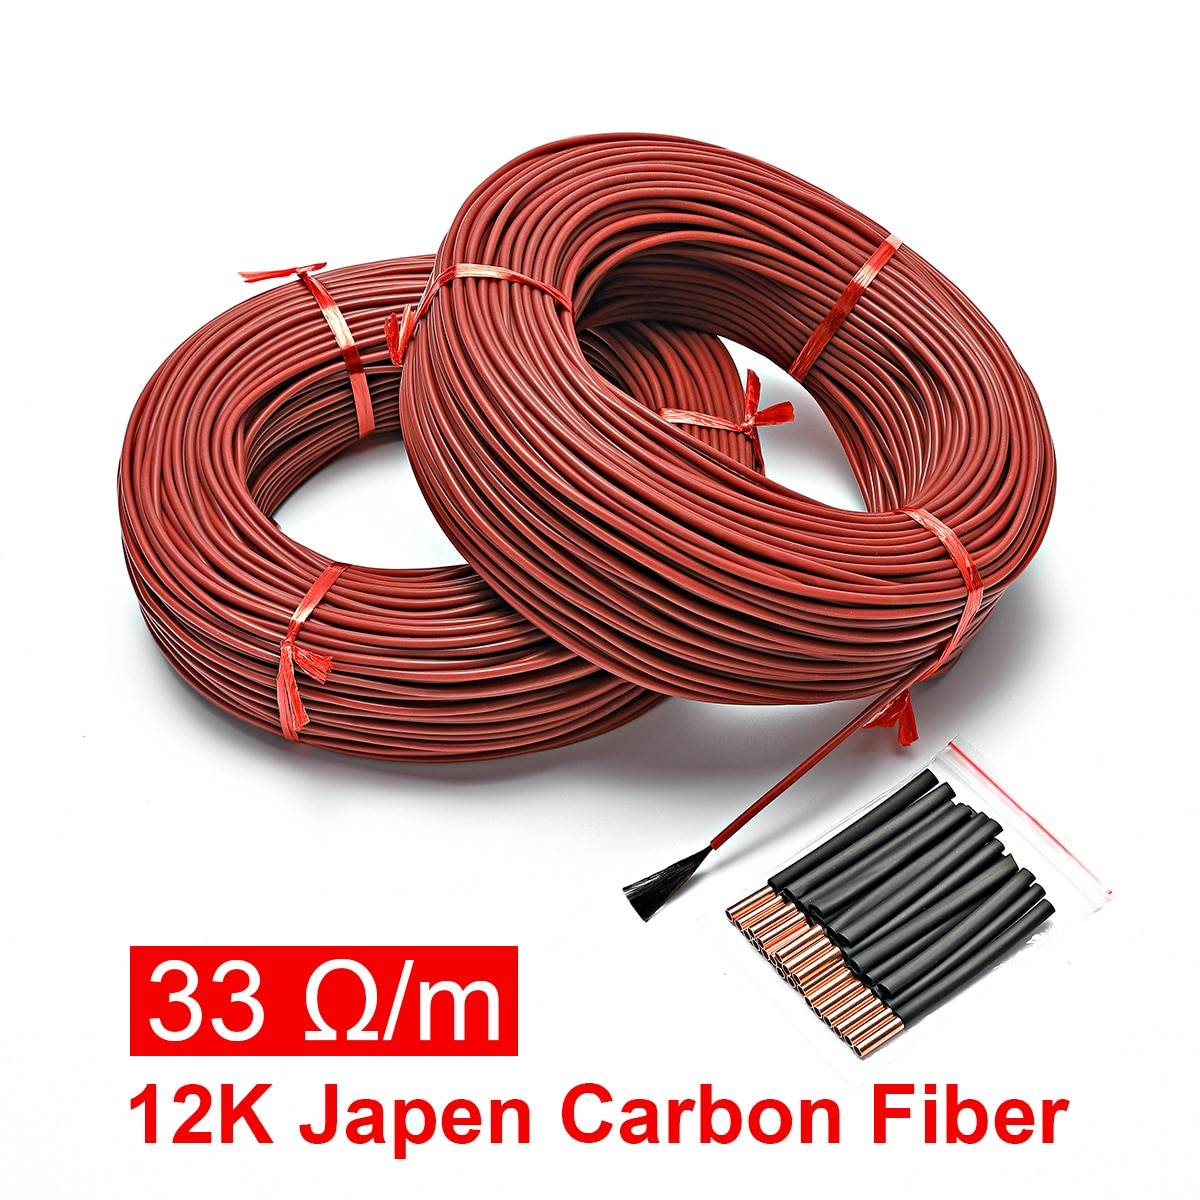 10 to 100 Meters 12K Floor Warm Heating Cable 33ohm/m Carbon Fiber Heating Wires heating wire coil